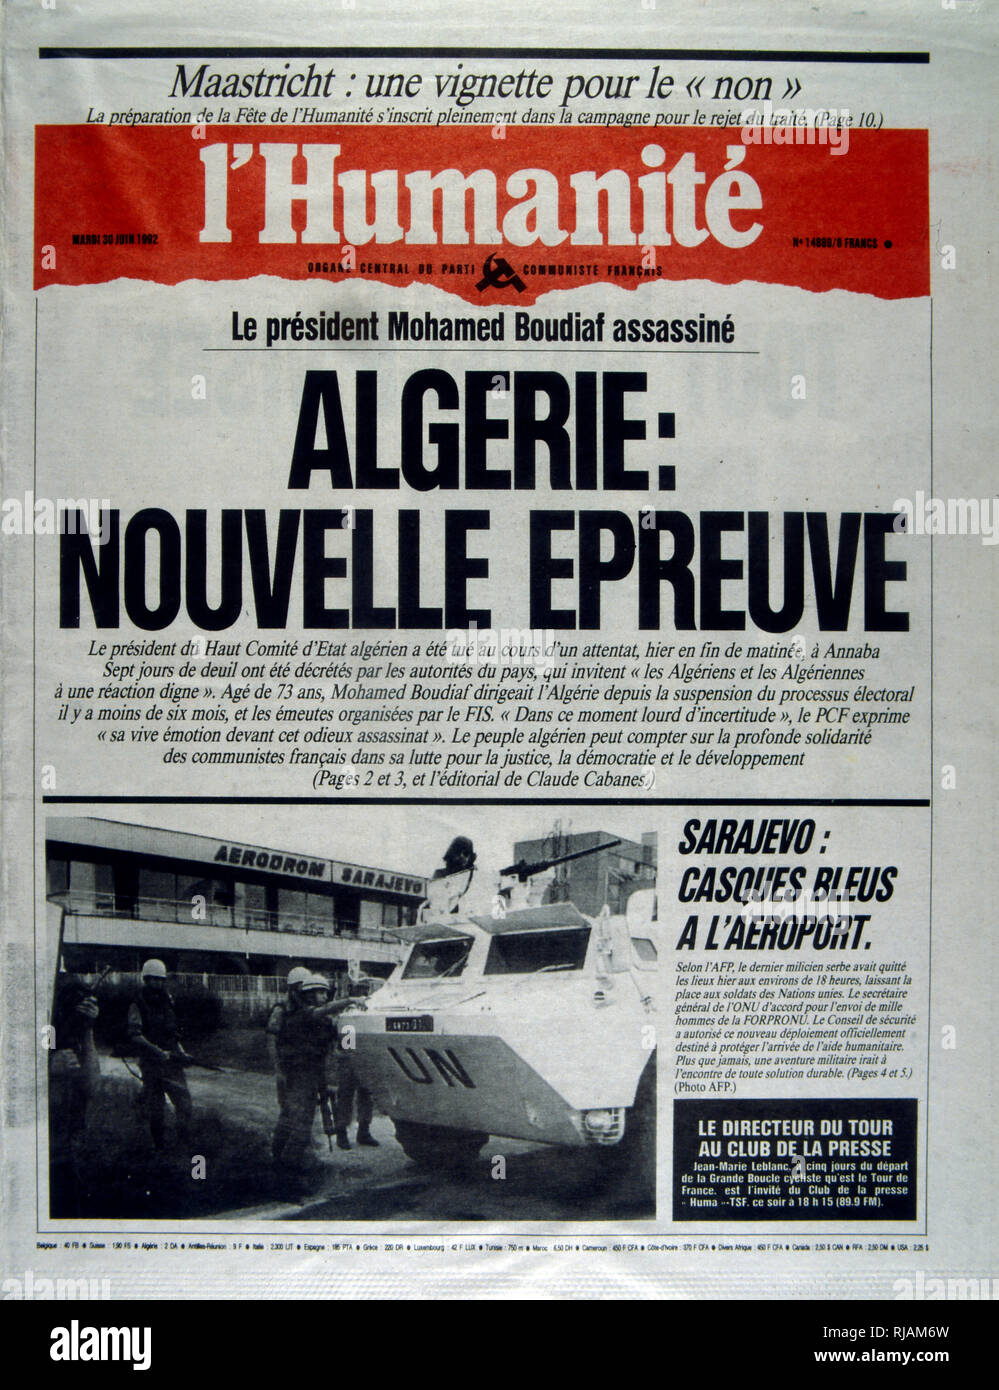 Front page of the  French newspaper 'L'Humanite' after the assassination of the Algerian President Boudaif in 1992. Mohamed Boudaif (1919 - 1992), Algerian political leader. In February 1992, after a 27-year exile, the military invited him back to become chairman of the High Council of State (HCE) of Algeria, a figurehead body for the military junta. On June 29, 1992, Boudiaf's term as HCE chairman was cut short when he was assassinated by a bodyguard during a televised public speech at the opening of a cultural center in Annaba, on his first visit outside Algiers as head of state. - Stock Image